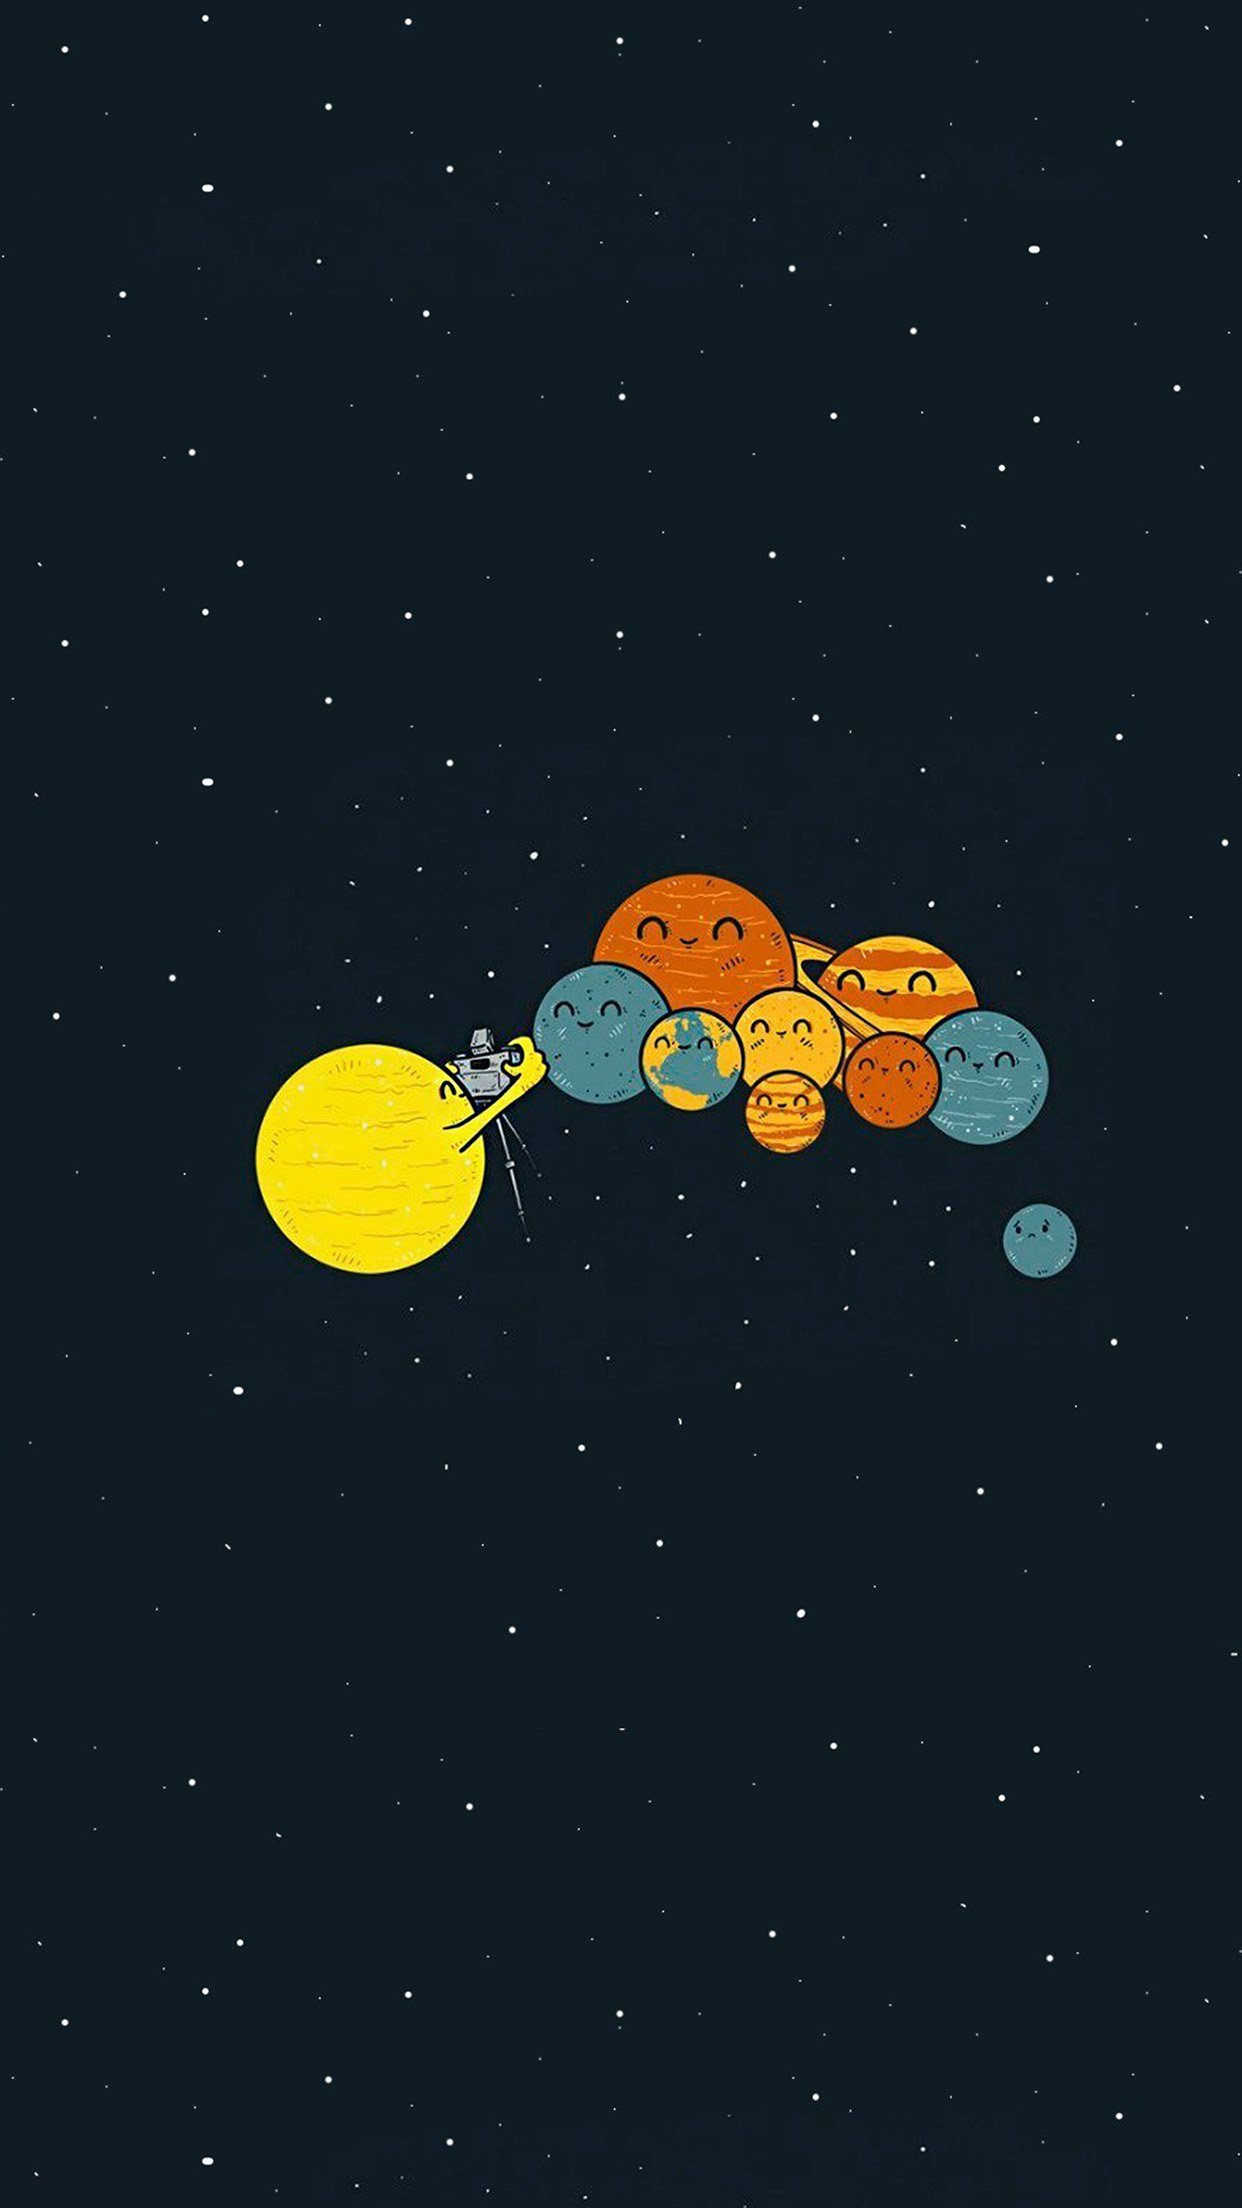 Planets Cute Illustration Space Art Android Wallpaper Android Hd